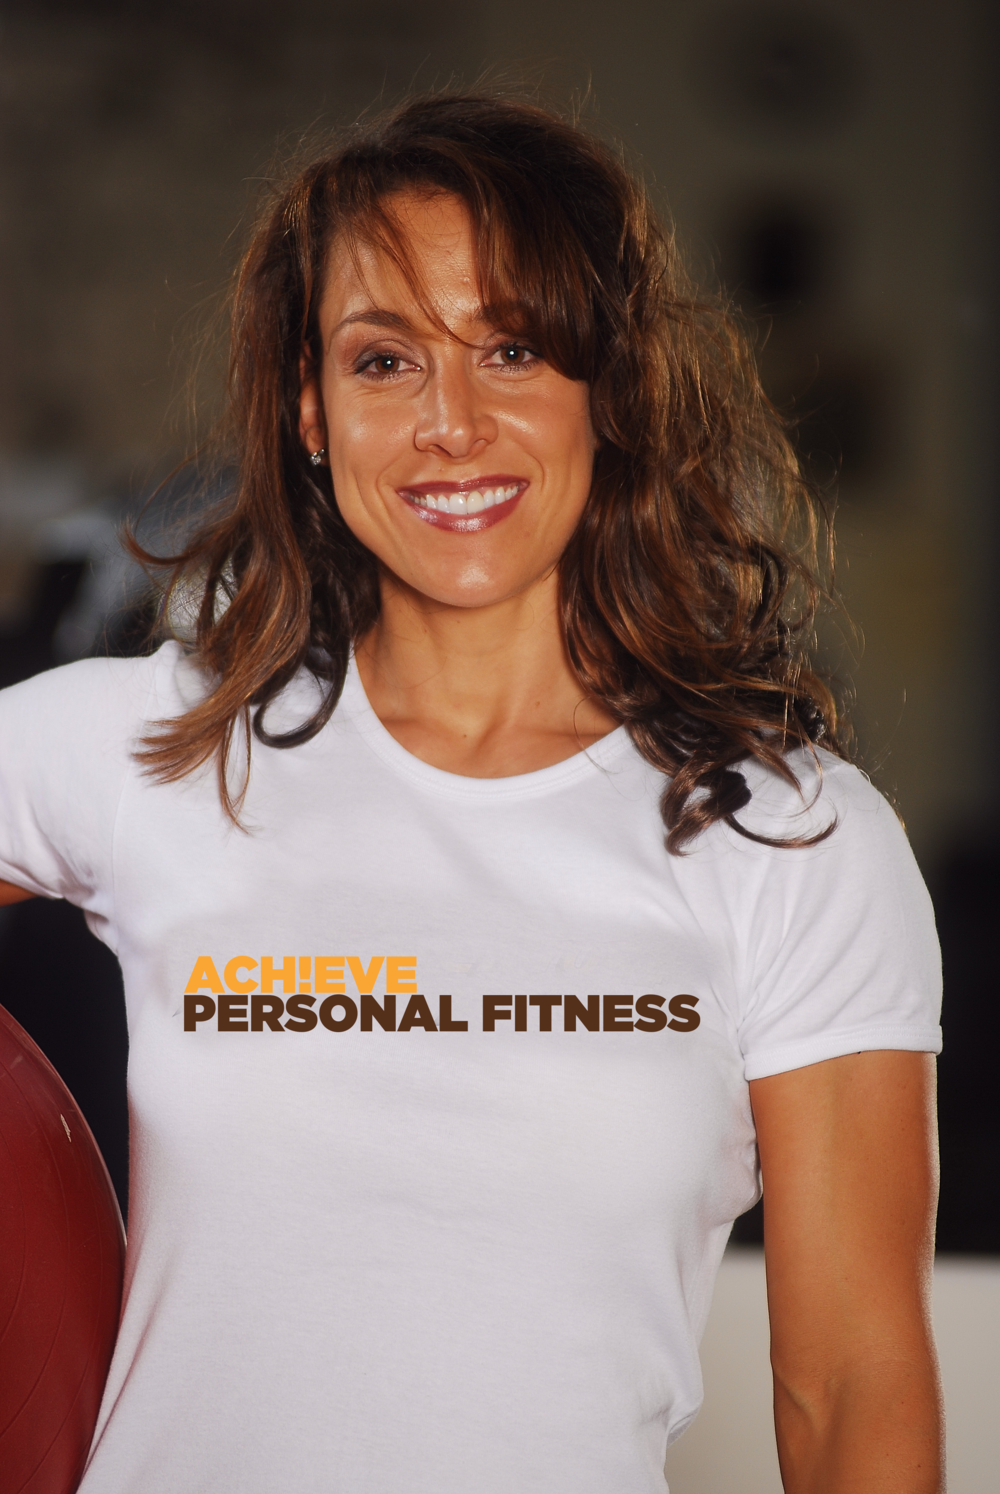 Coach Catherine Andersen - Catherine Andersen is founder and co-owner of Achieve Personal Fitness since 2008. Catherine is a NESTA (National Exercise & Sports Trainers Association) certified Adventure Boot Camp instructor, a certified personal trainer through NSCA (National Strength & Conditioning Association), and a NESTA fitness nutrition specialist. She is currently working on becoming a Lifestyle Weight Management Specialist through NESTA, as well as a NSCA Certified Special Population Specialist.An athlete herself, Catherine earned professional status in the fitness industry in 2007 at the USA Championships in Las Vegas. She is an IFBB (International Federation of Bodybuilding & Fitness) Professional Figure competitor and is the first Figure Pro in Wisconsin.She attended the University of Arkansas Little Rock on a college basketball scholarship, graduated with an International Business Degree, and went on to get her MBA from Cardinal Stritch. Catherine's technical and scientific knowledge comes from years of continued studies in Human Biomechanics and Performance, Nutrition, Sports Psychology, Human Physiology, Neural Linguistic Programming, and Kinesiology.Catherine currently lives in Shorewood, Wisconsin with her husband and business co-owner Michael.